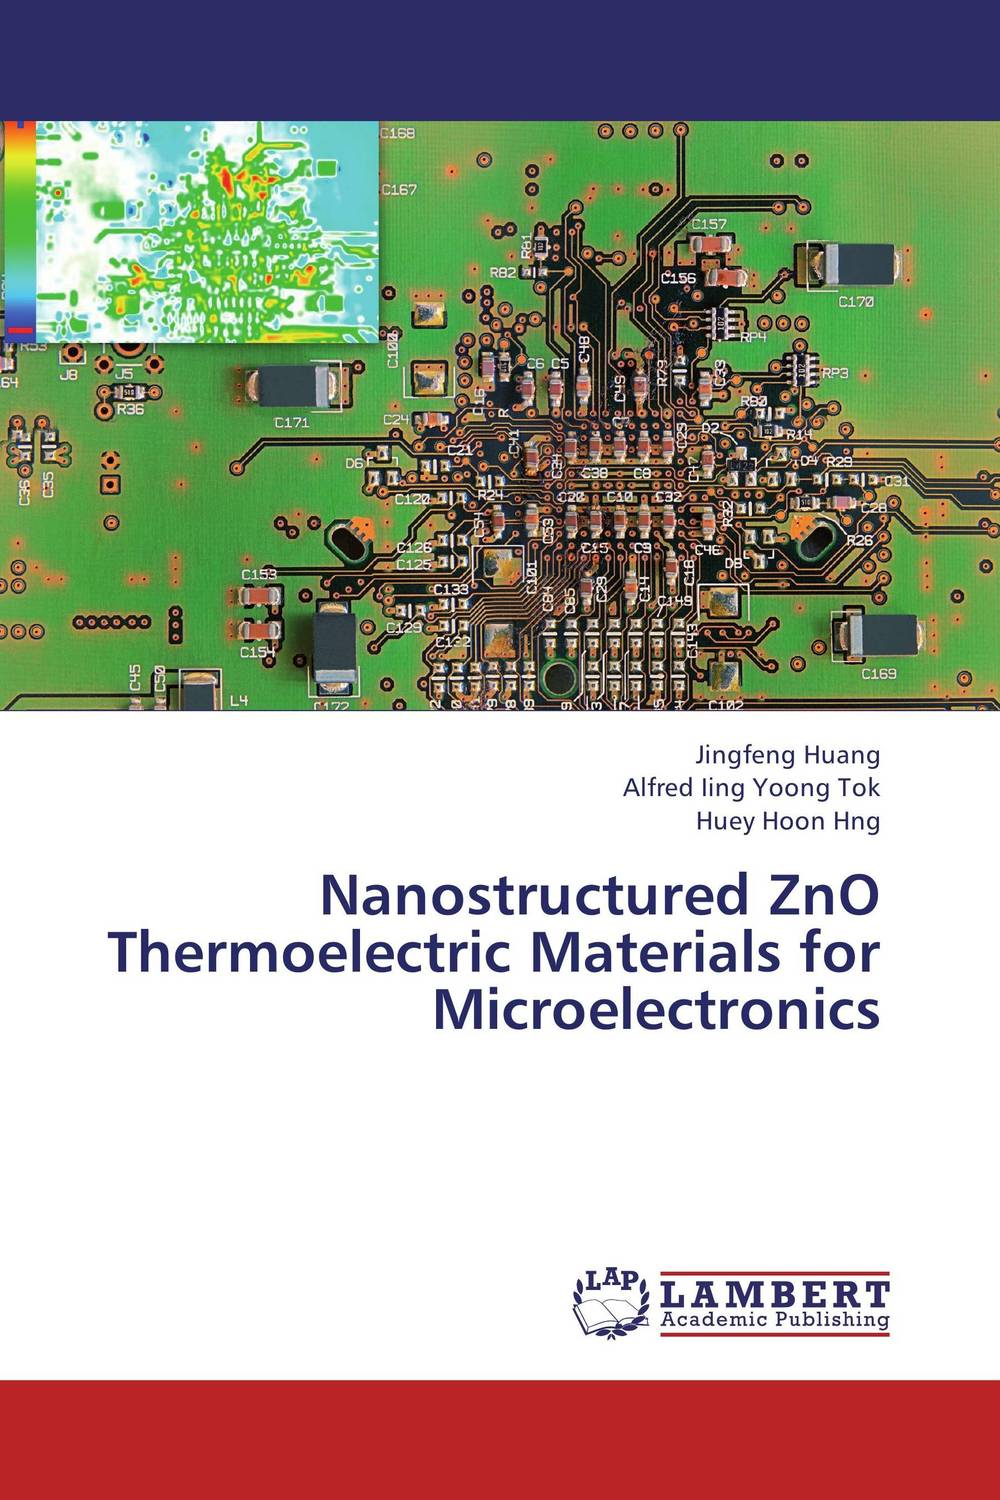 Nanostructured ZnO Thermoelectric Materials for Microelectronics materials science in microelectronics i